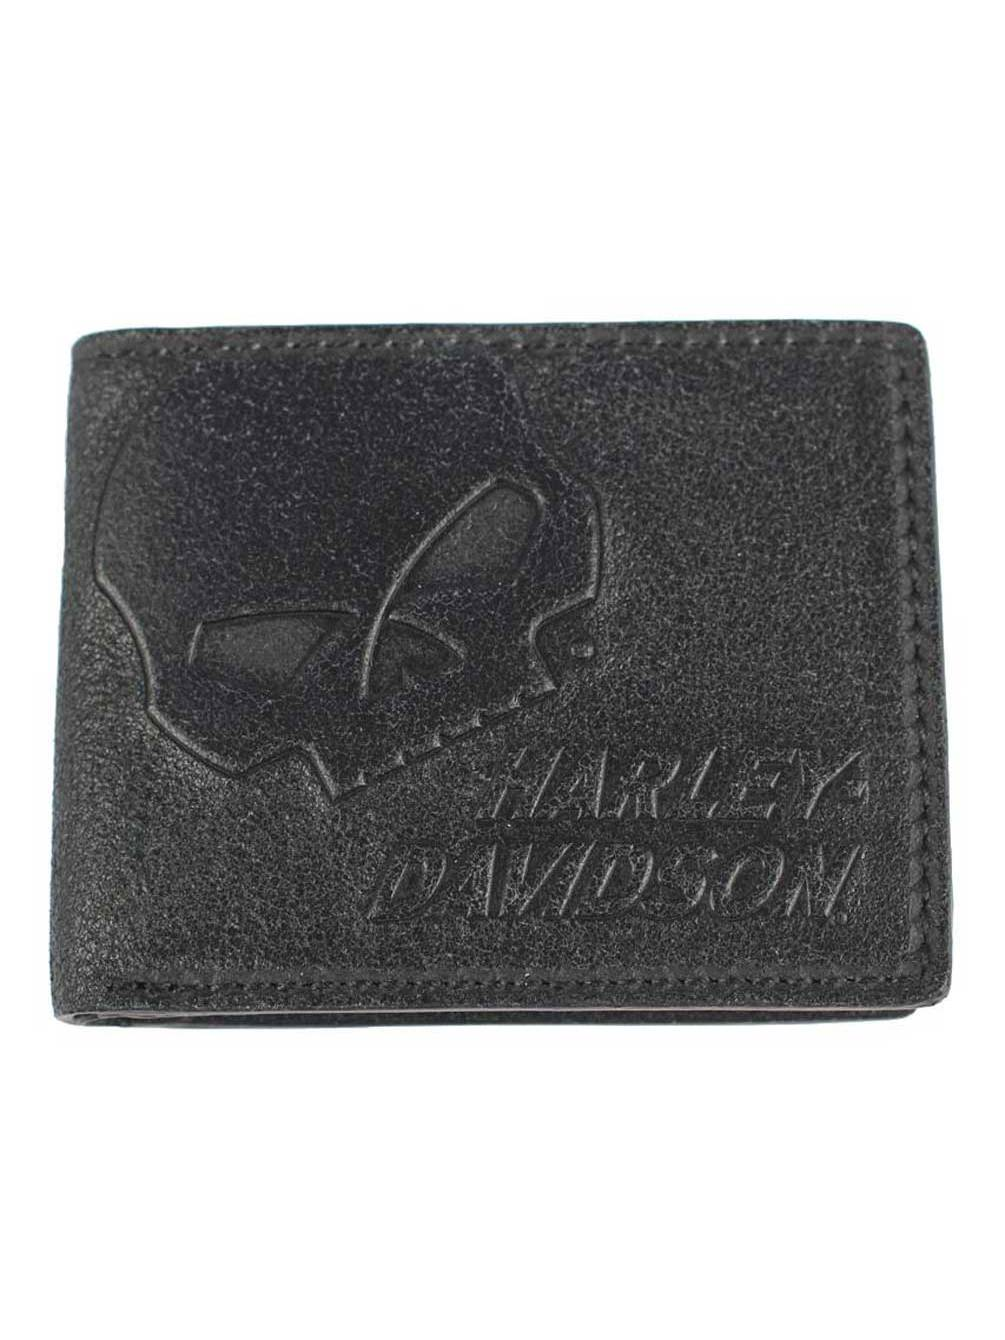 Harley-Davidson Mens Skull Graphite TriFold Medium Leather Wallet UN4618L-GRYBLK